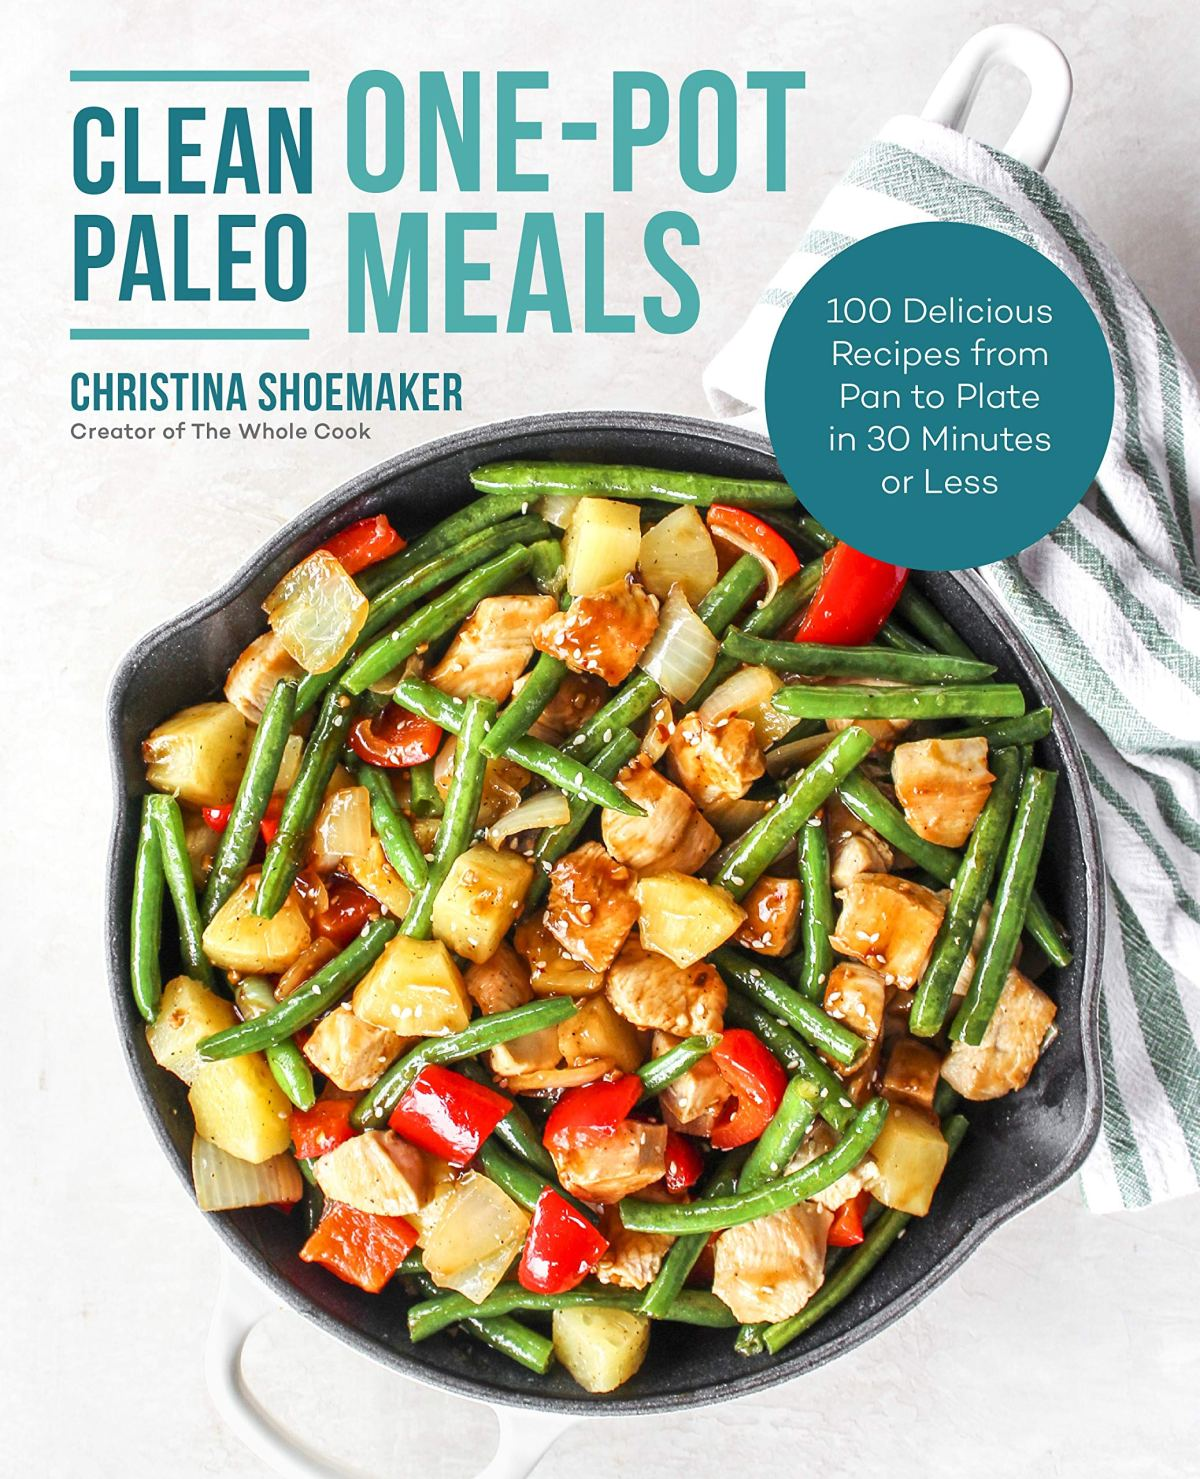 Clean Paleo One-Pot Meals: 100 Delicious Recipes from Pan to Plate in 30 Minutes or Less 1